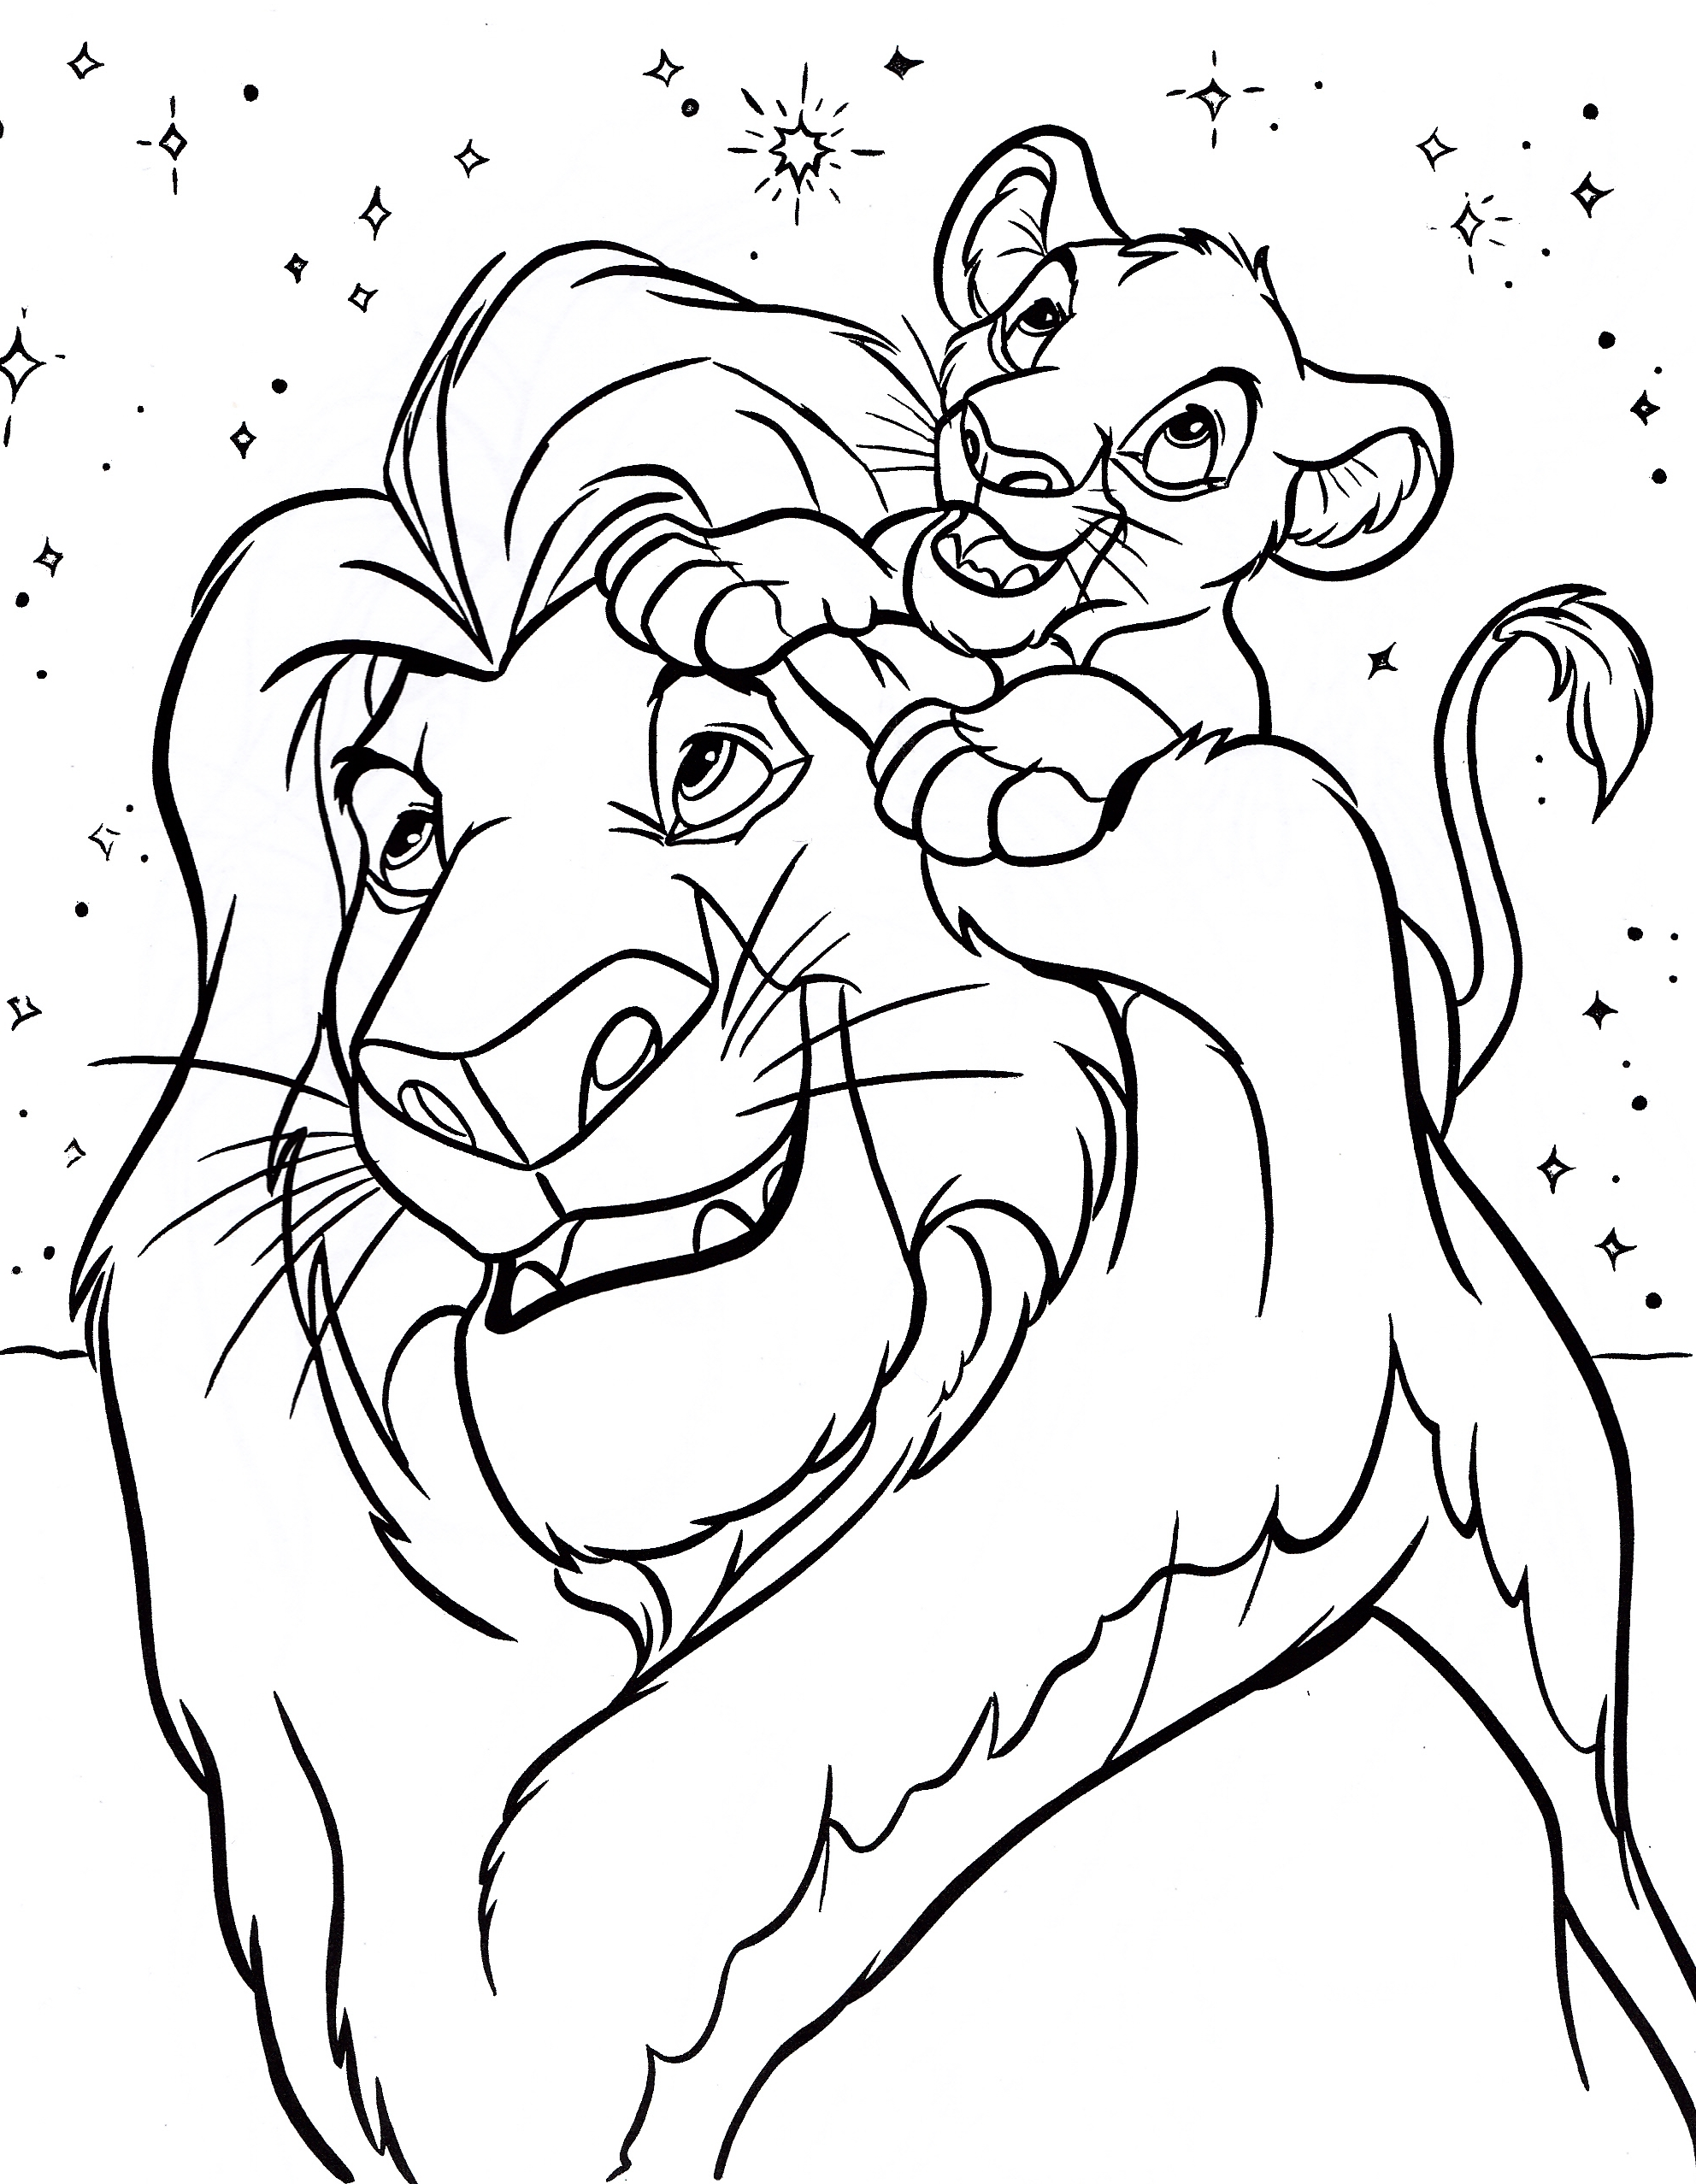 Free Printable Simba Coloring Pages For Kids Coloring Pages Disney